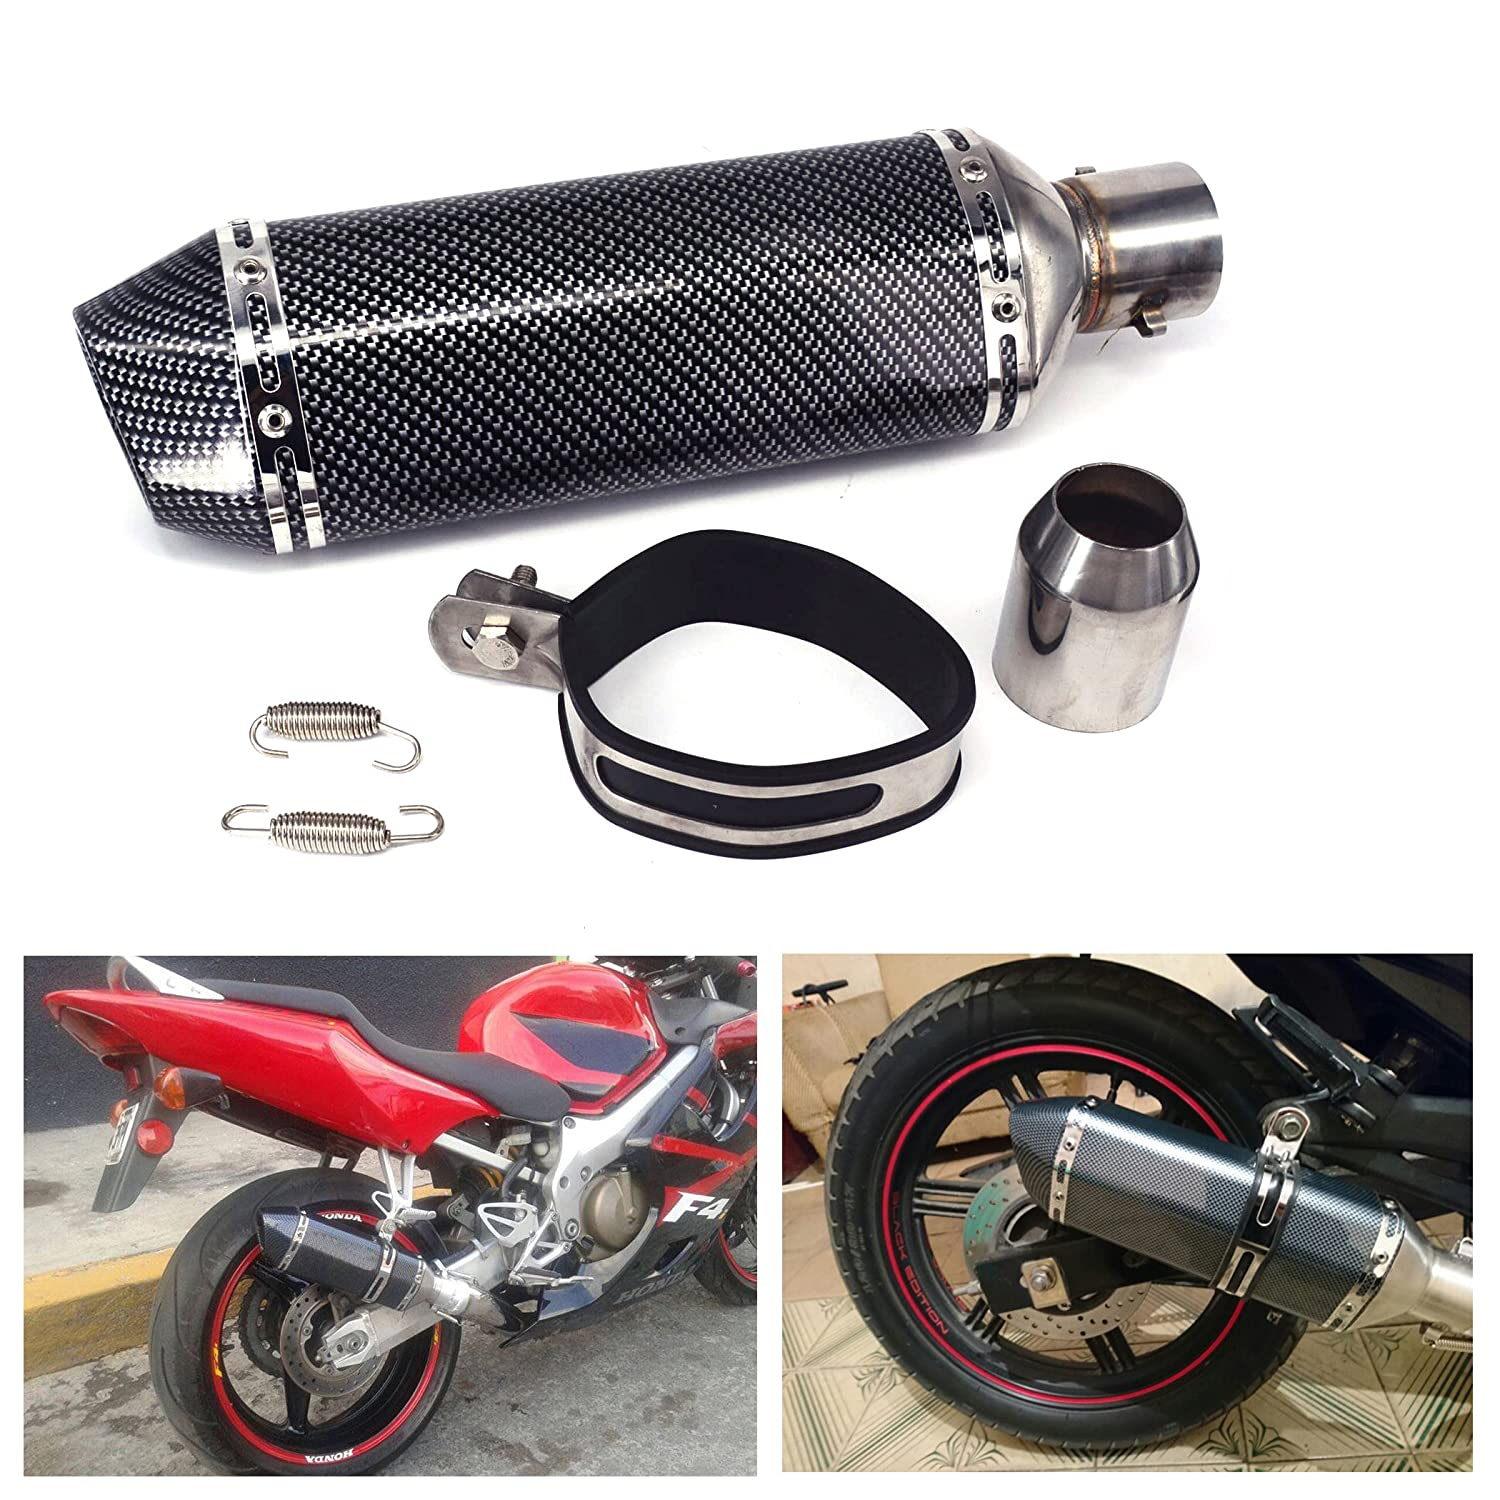 "JFG RACING Slip On Exhaust Universal 1.5-2"" Inlet Muffler With Removable DB Killer For Street Bike Motorcycle Scooter - Carbon Fiber Color"